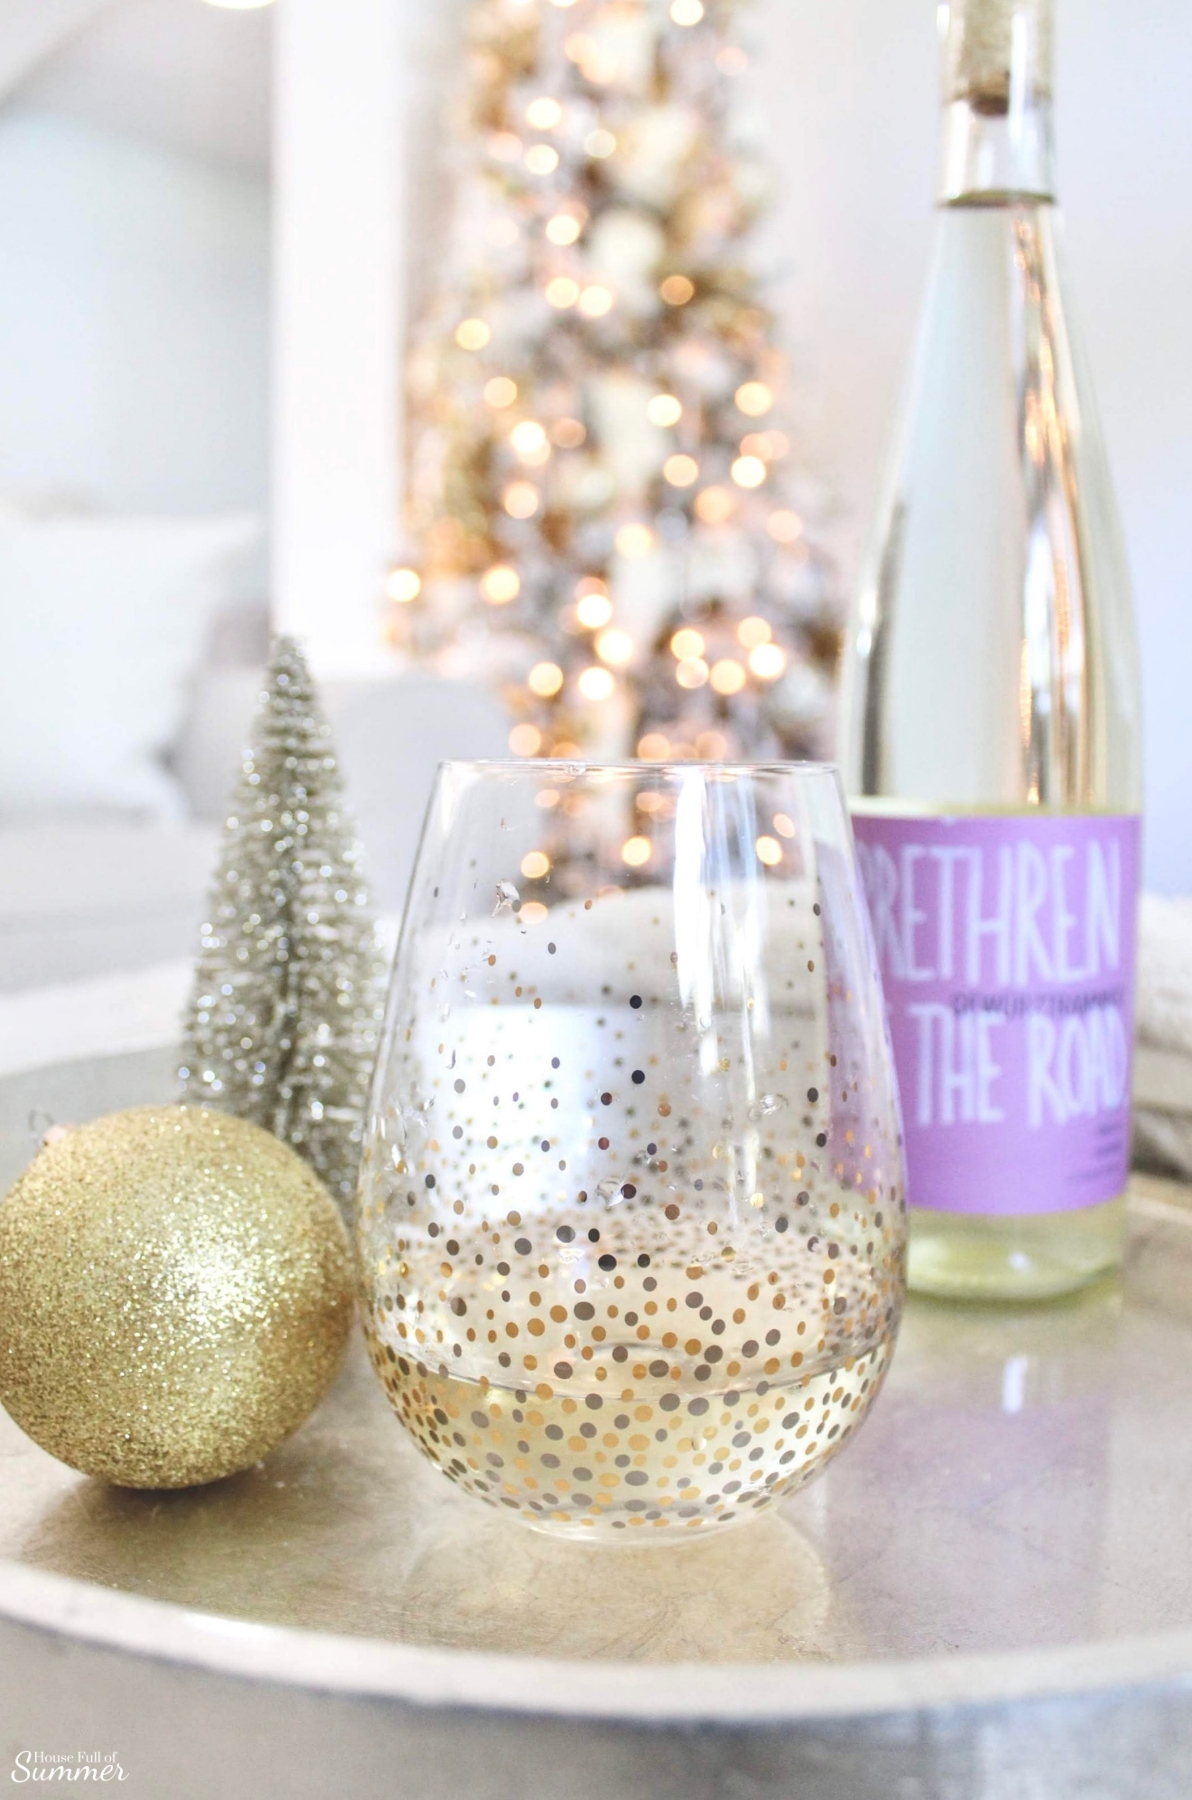 Have a Drink with Winc | Wine Tailored to Your Taste buds and Delivered to Your Front Door! Use some of your bottles to create darling hostess gift, Christmas gifts and more! wine subscription #wine #wino #barcart #christmasgiftideas gifts for her, gifts for him, Christmas party ideas #Winc